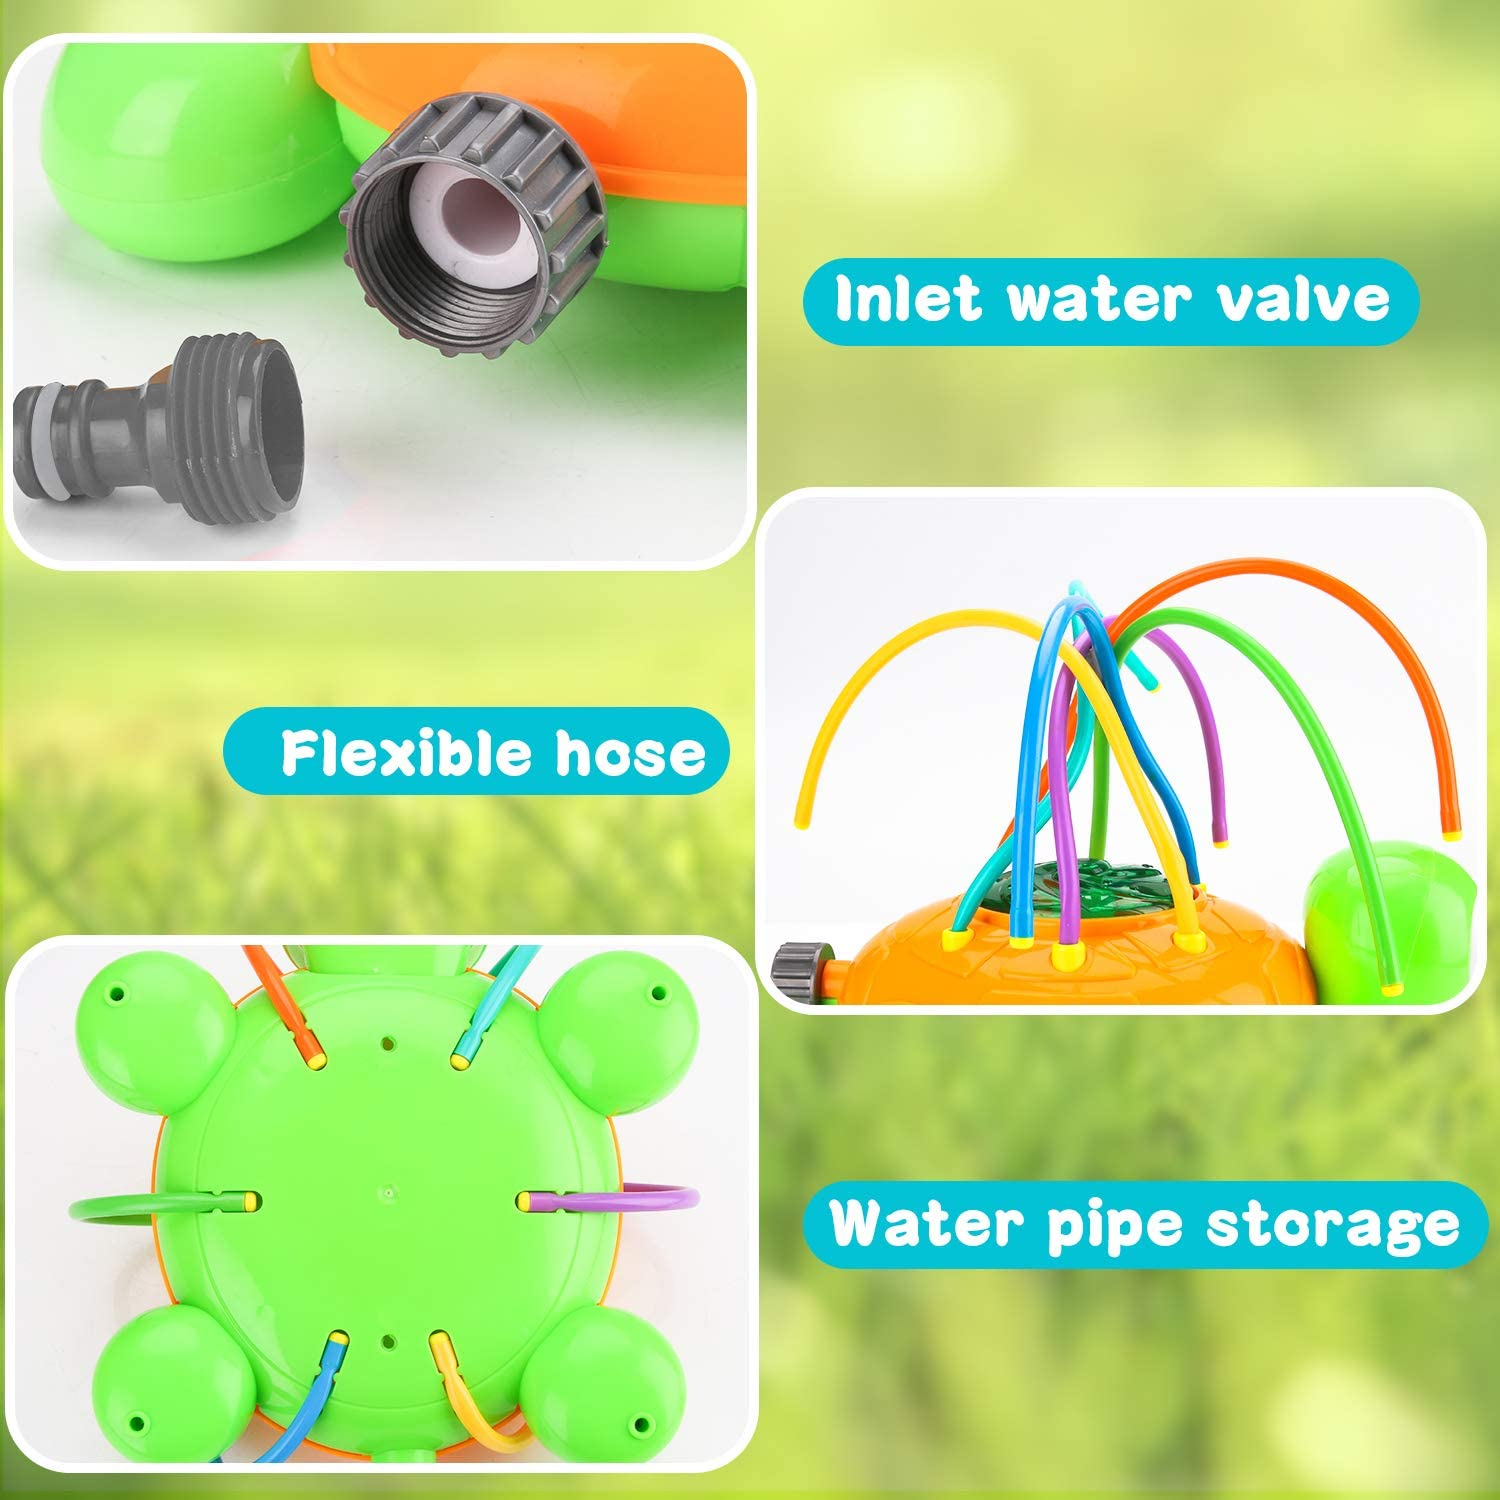 Summer Spinning Water Sprinkler Toy with Wiggle Tubes BBLIKE Kids Water Sprinkler Water Spray Sprinkler Toys for Toddlers Kids Family Outdoor Play